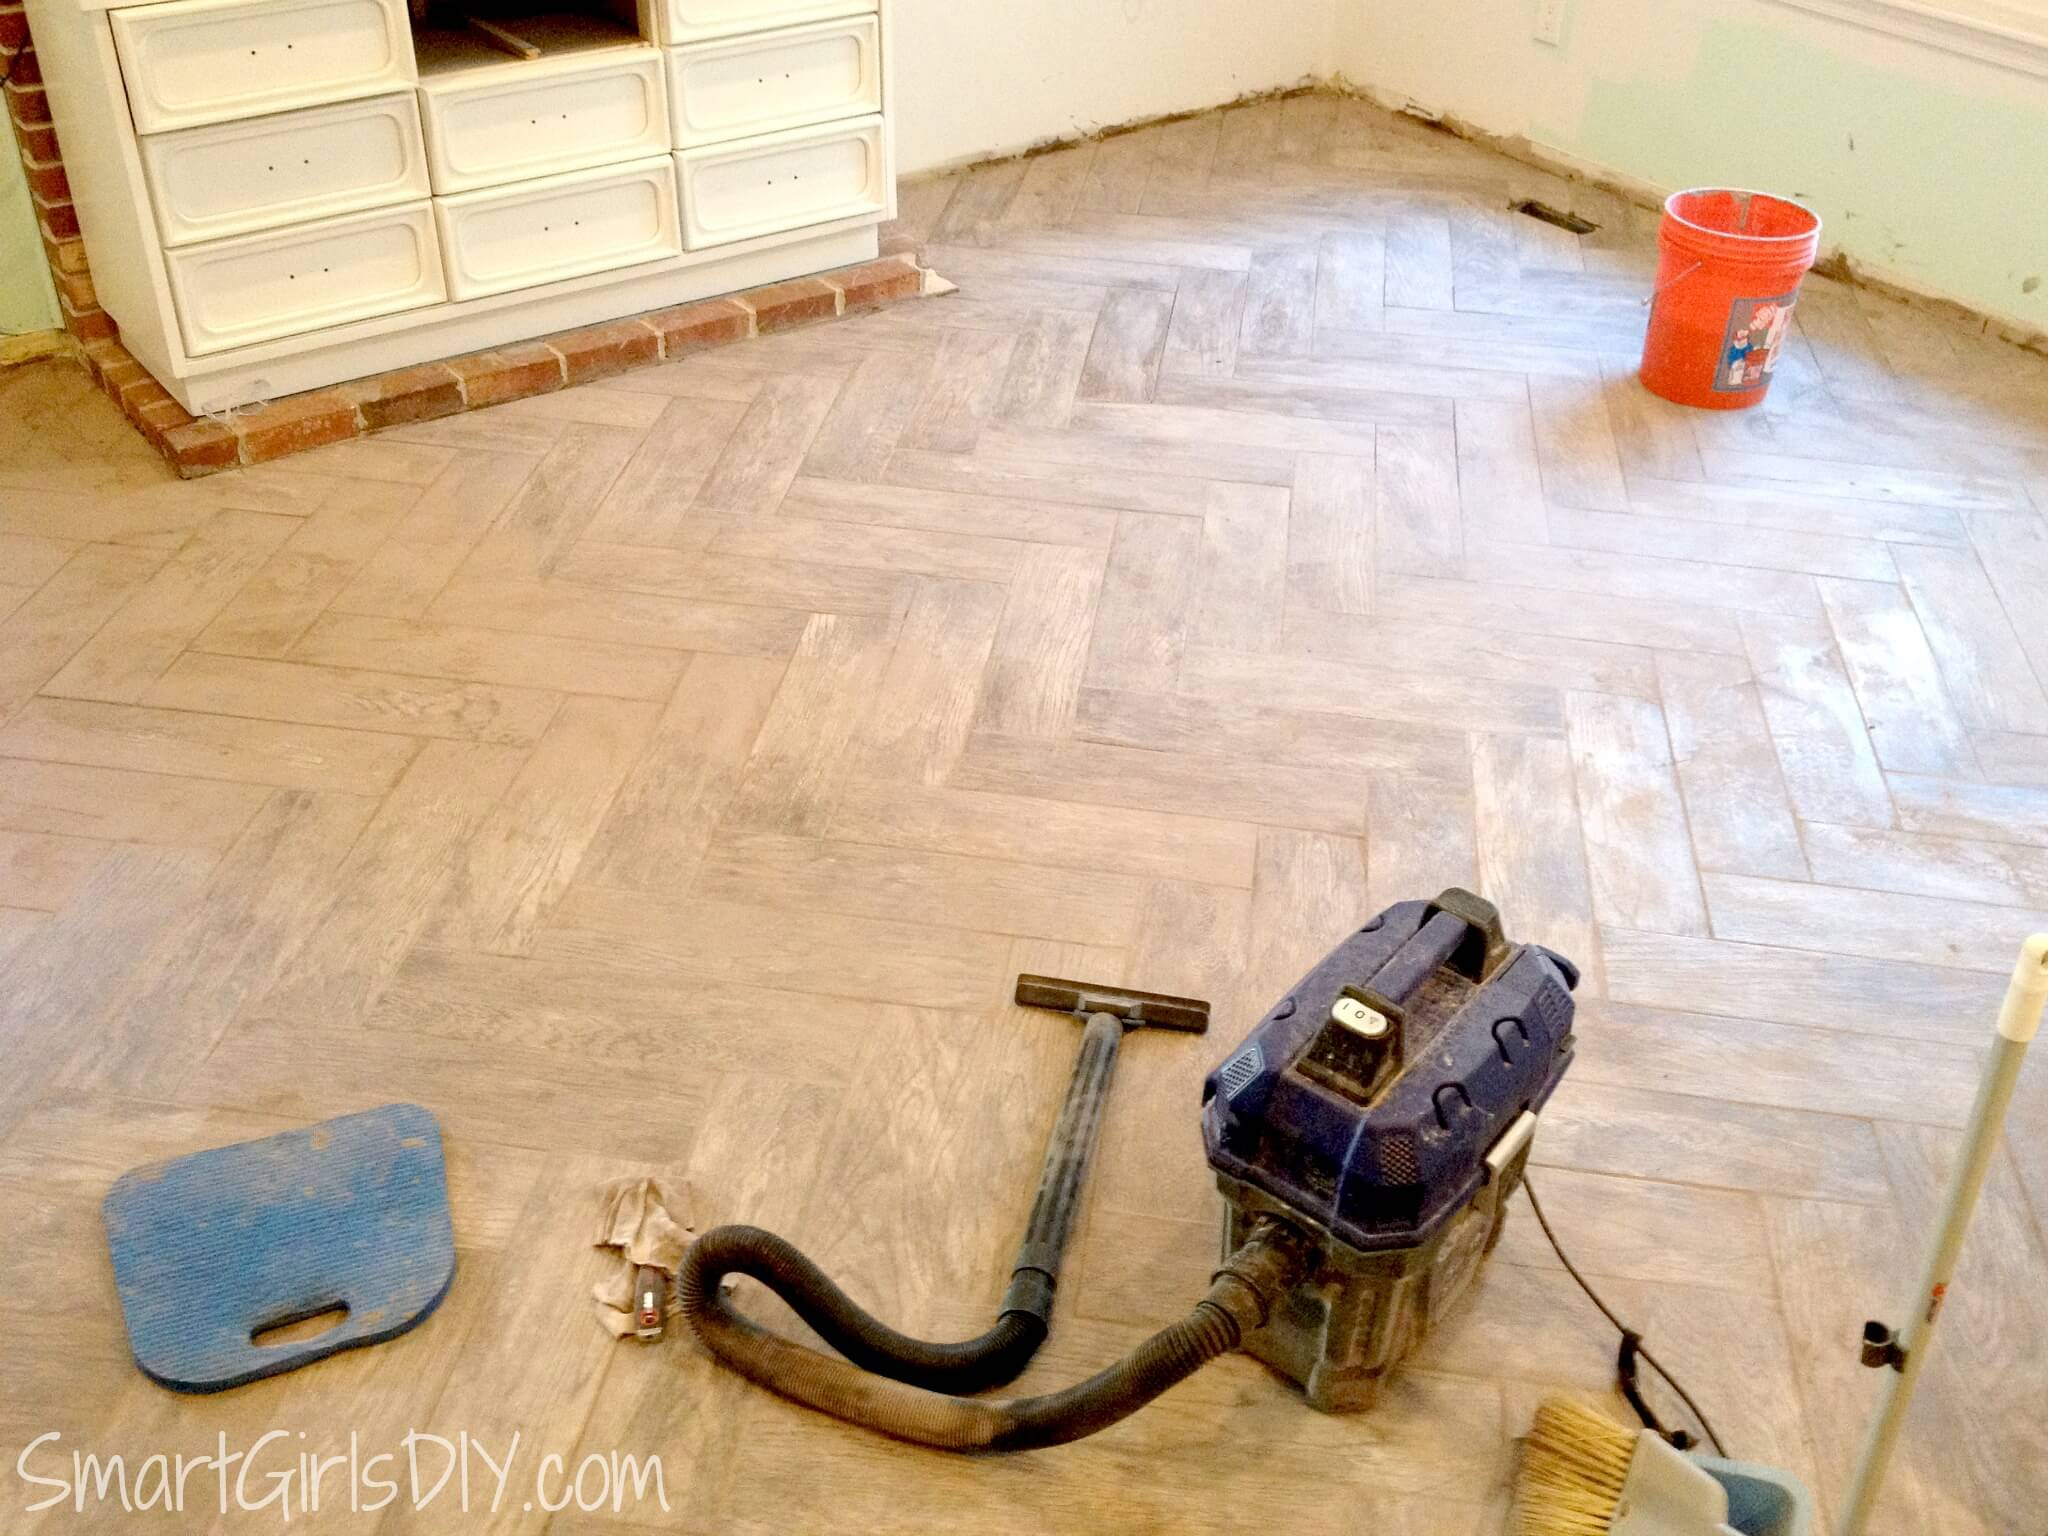 How to clean grout off tile floor